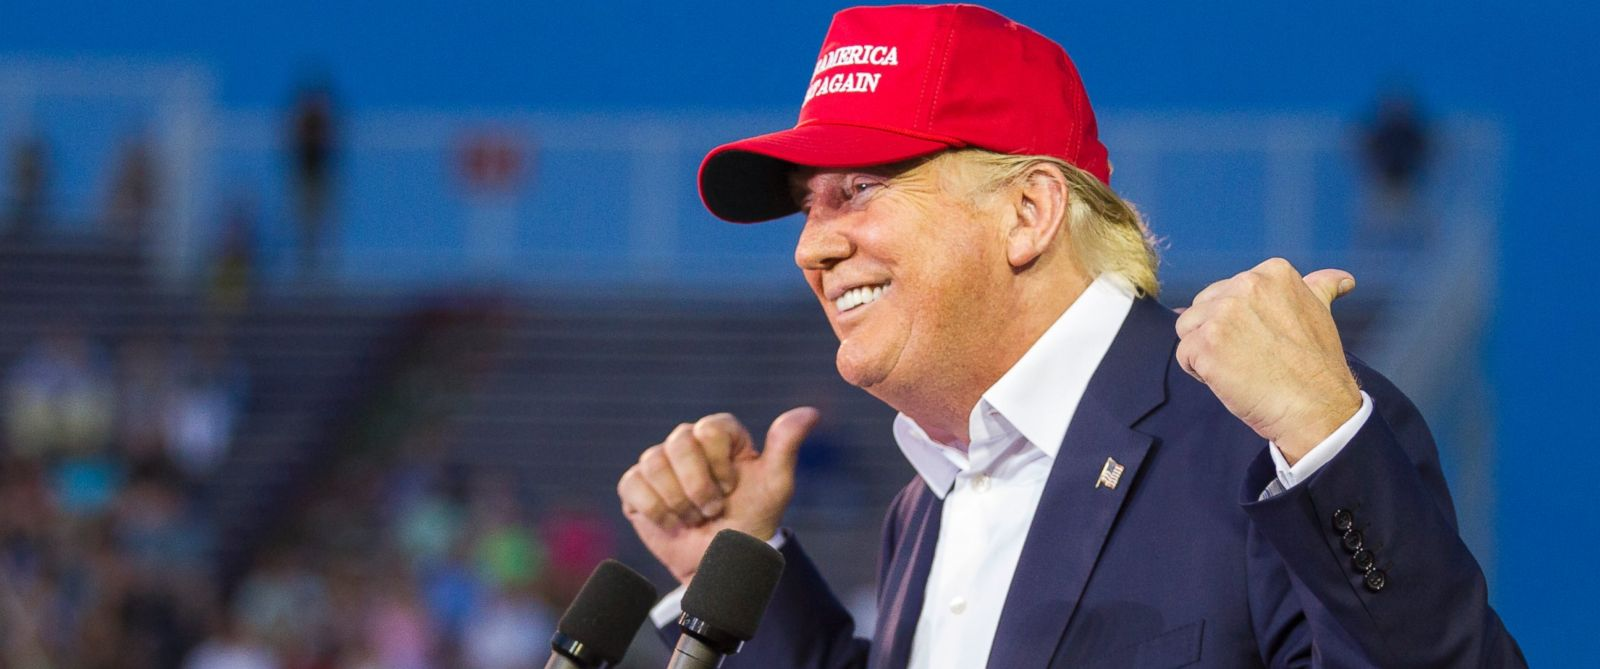 PHOTO: U.S. Republican presidential candidate Donald Trump speaks at Ladd-Peebles Stadium on Aug. 21, 2015 in Mobile, Alabama.